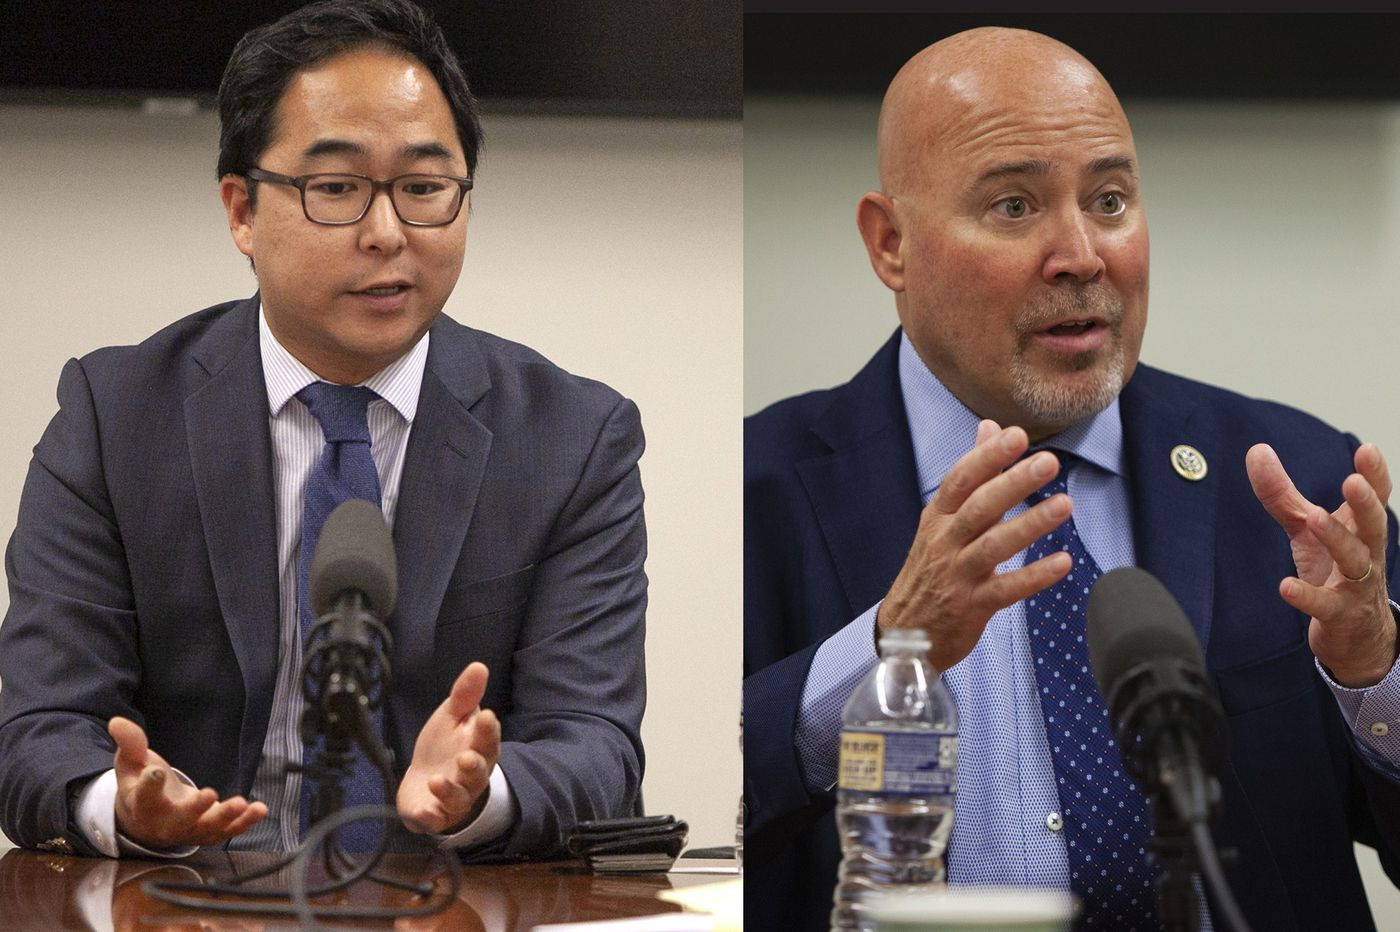 U.S. Rep. Tom MacArthur and Democrat Andy Kim too close to call in N.J.'s Third Congressional District